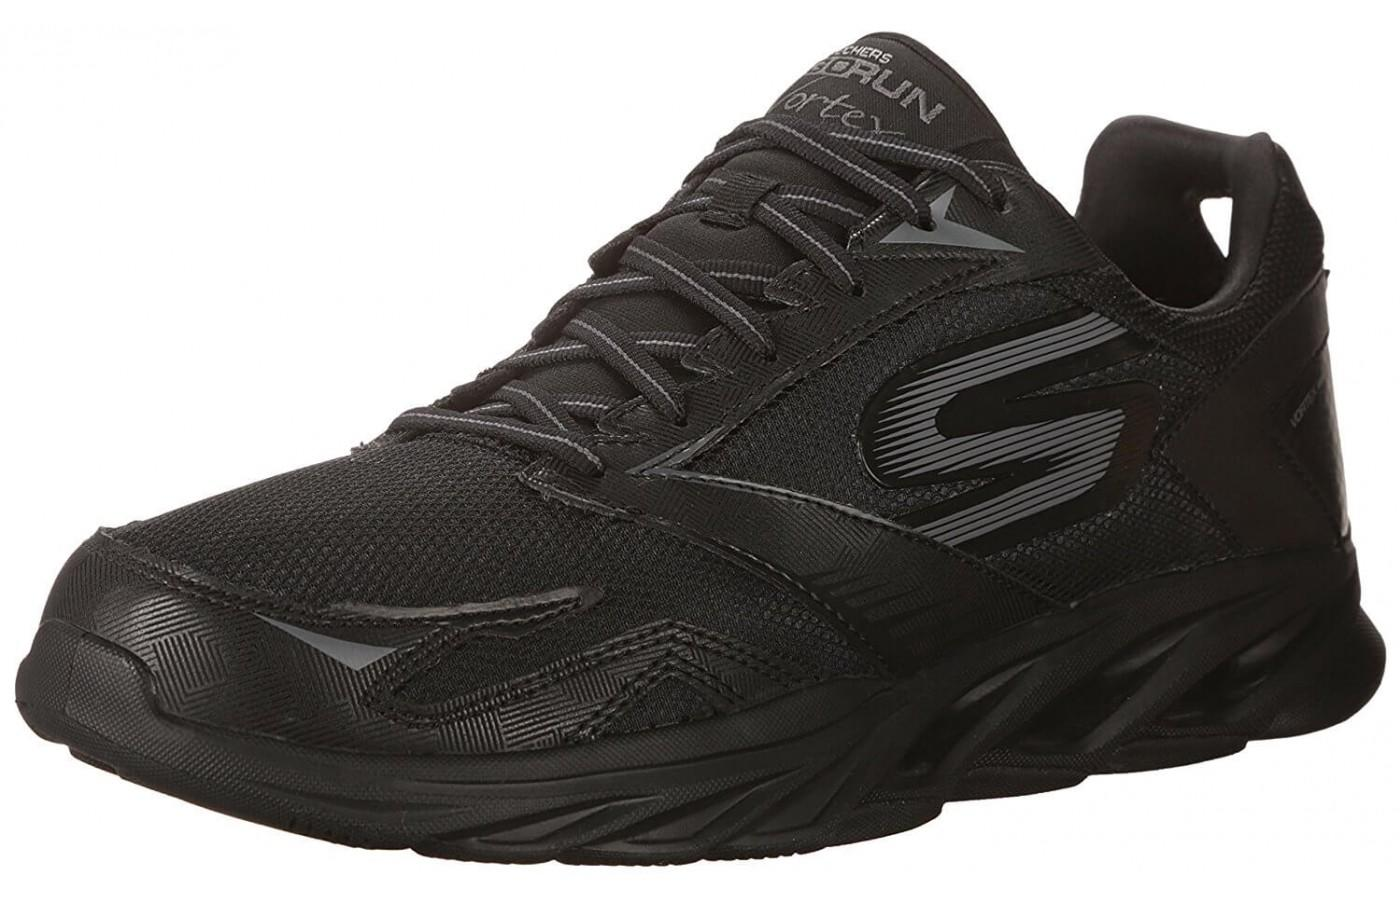 Skechers GoRun Vortex all black version